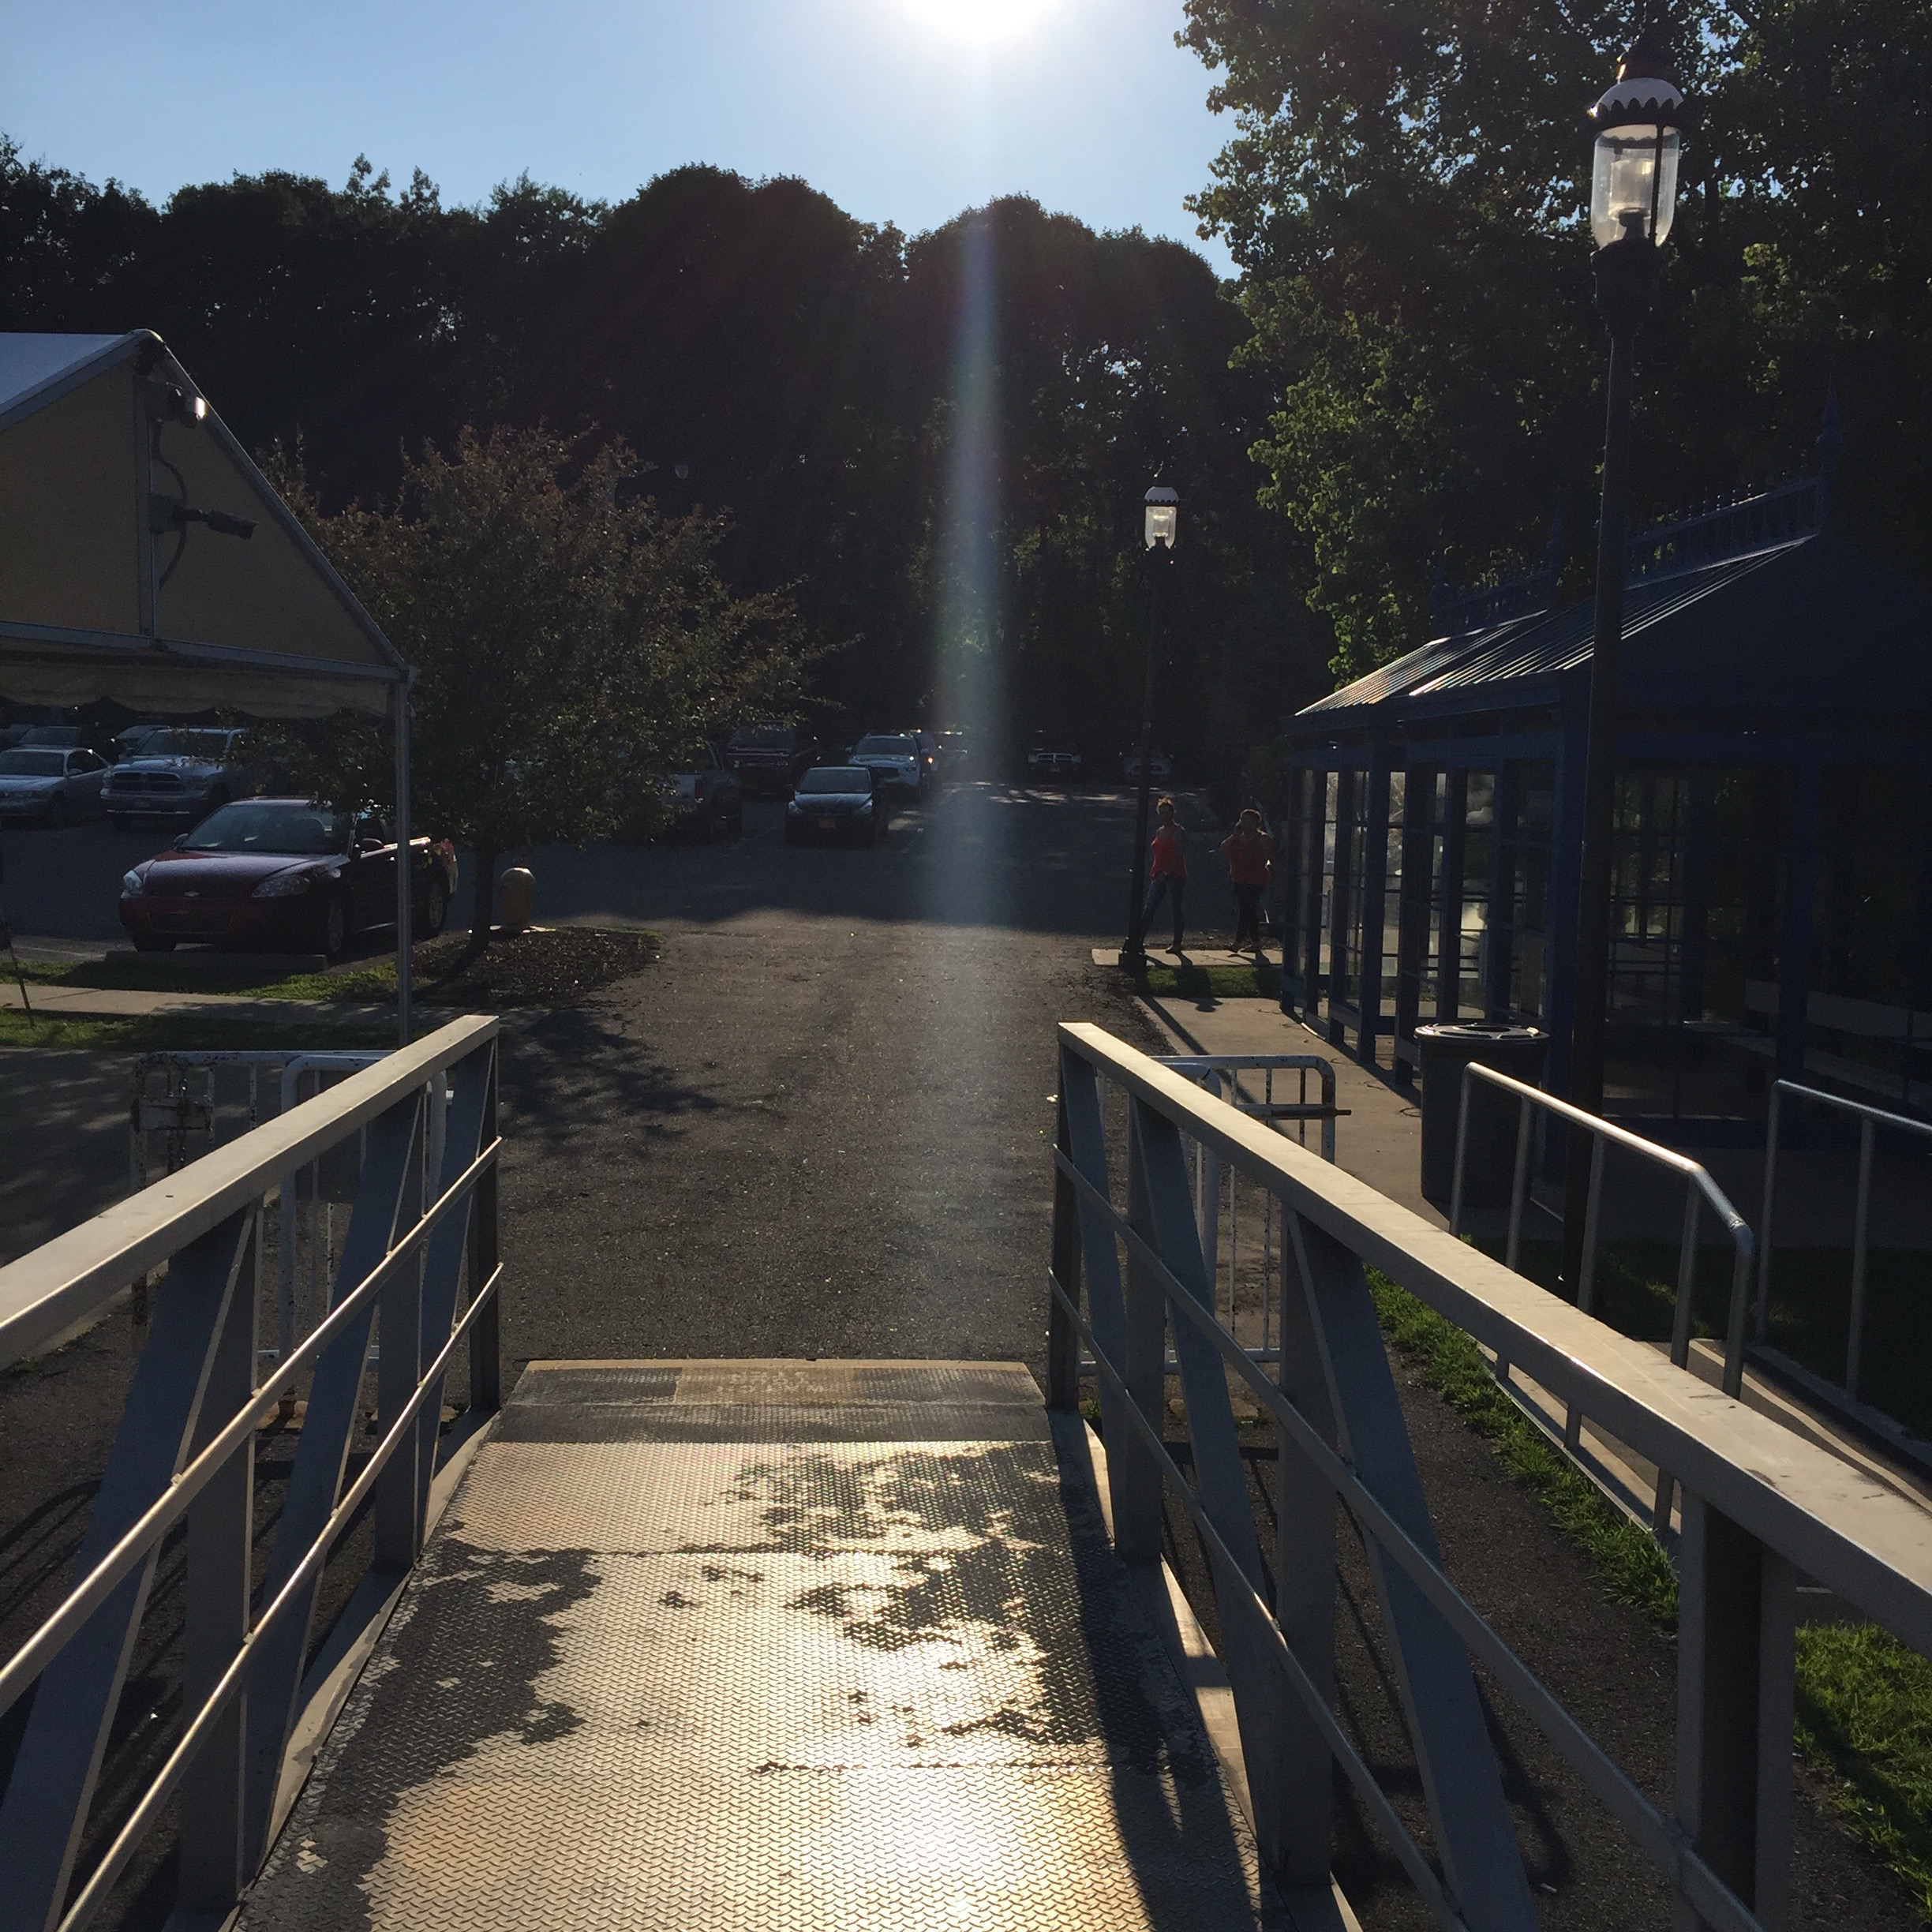 The boarding dock on the Newburgh side. Photo Credit: Katie Hellmuth Martin